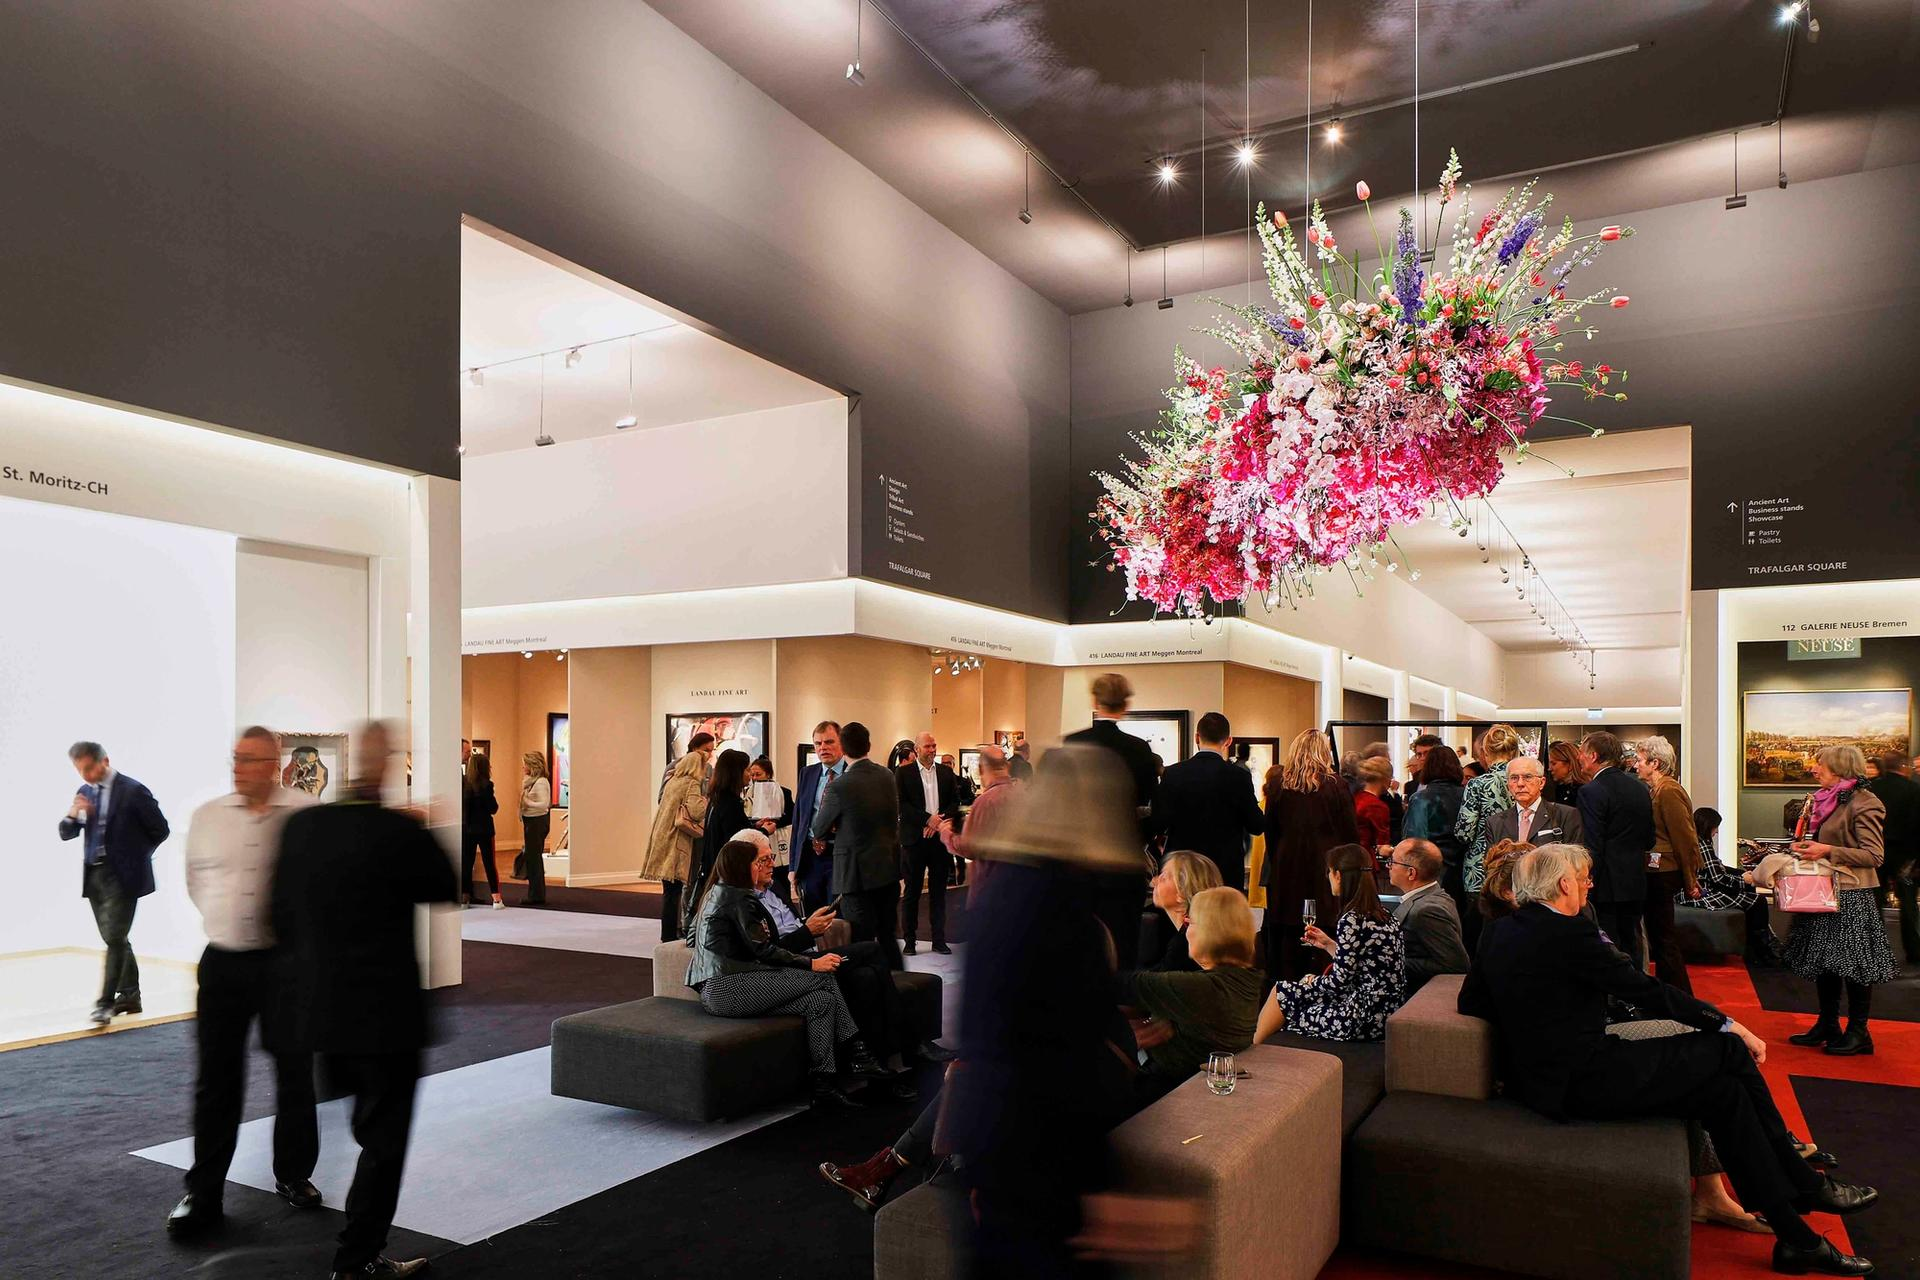 Tefaf Maastricht has around 285 exhibitors and attracted 4,000 visitors for its first preview day last Thursday Courtesy of Tefaf